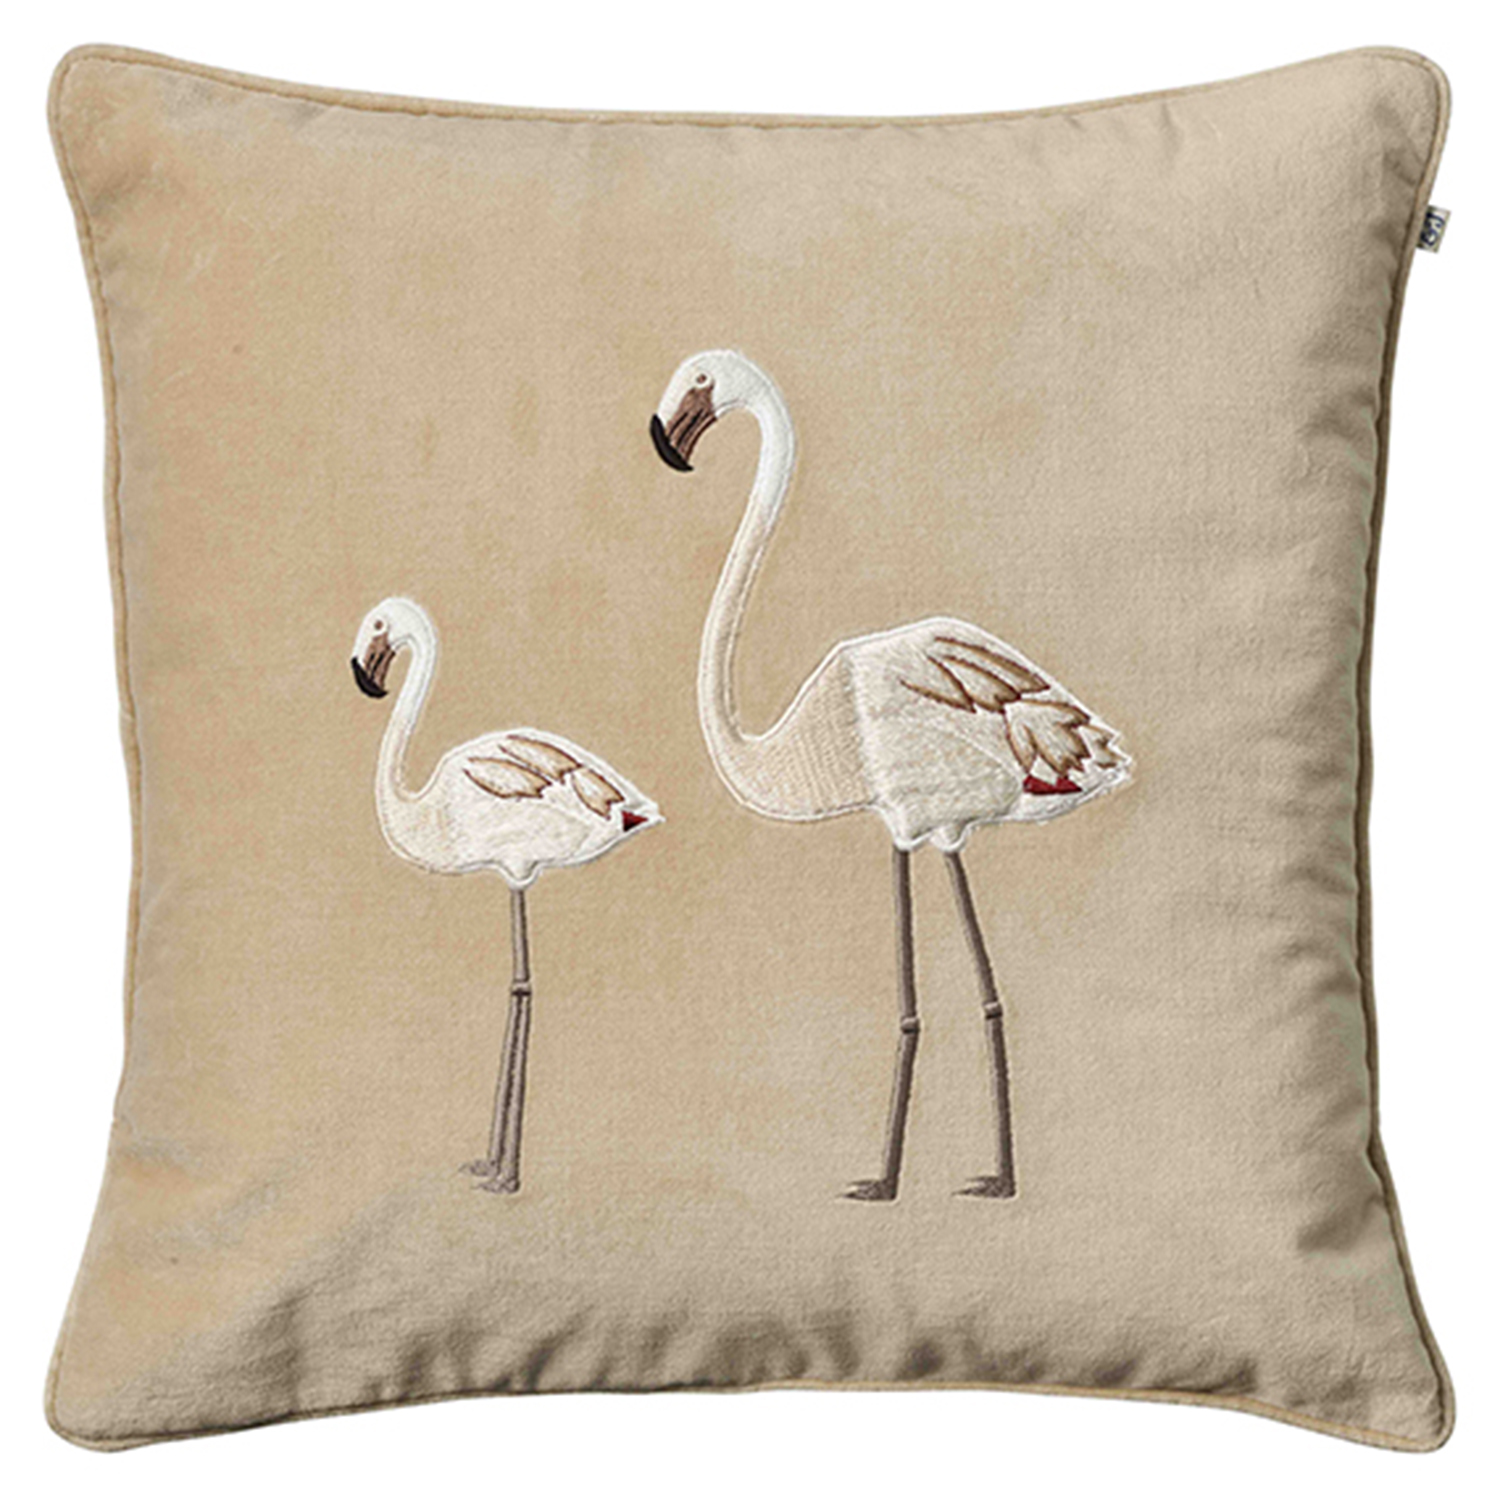 Embroidered Flamingo Kuddfodral 50x50 cm, Beige